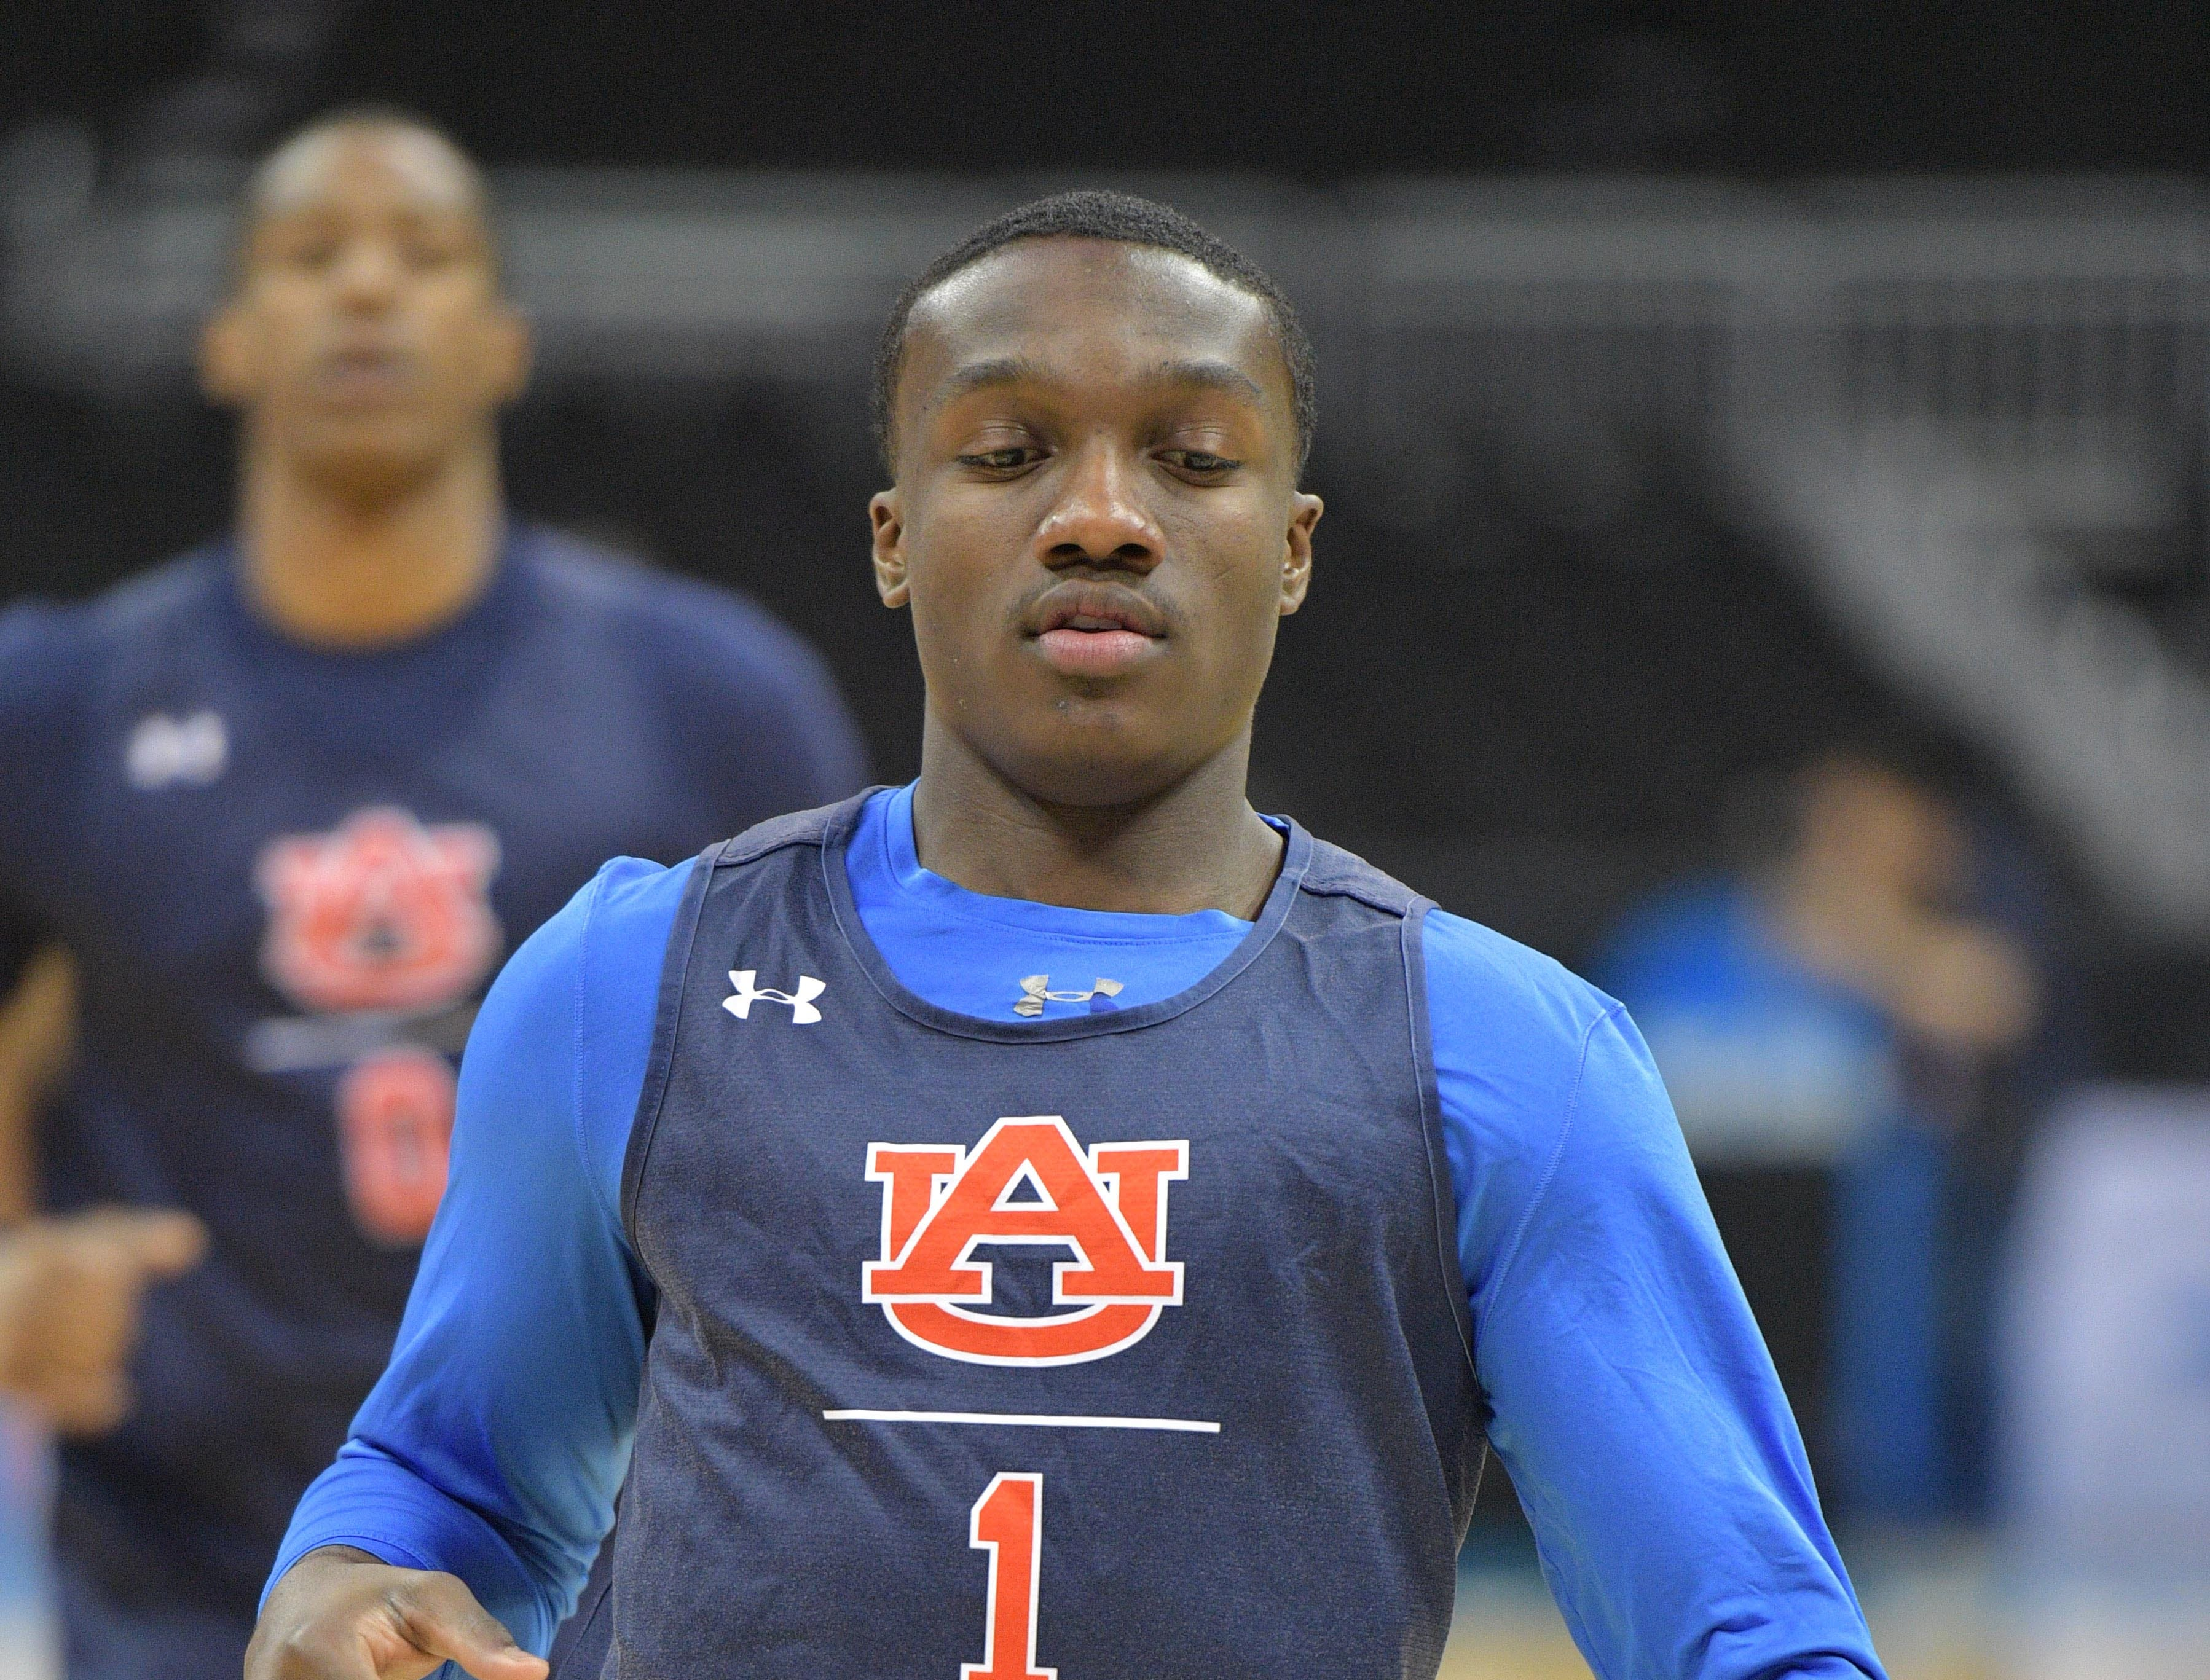 Mar 28, 2019; Kansas City, MO, United States; Auburn Tigers guard Jared Harper (1) runs drills during practice for the midwest regional of the 2019 NCAA Tournament at Sprint Center. Mandatory Credit: Denny Medley-USA TODAY Sports